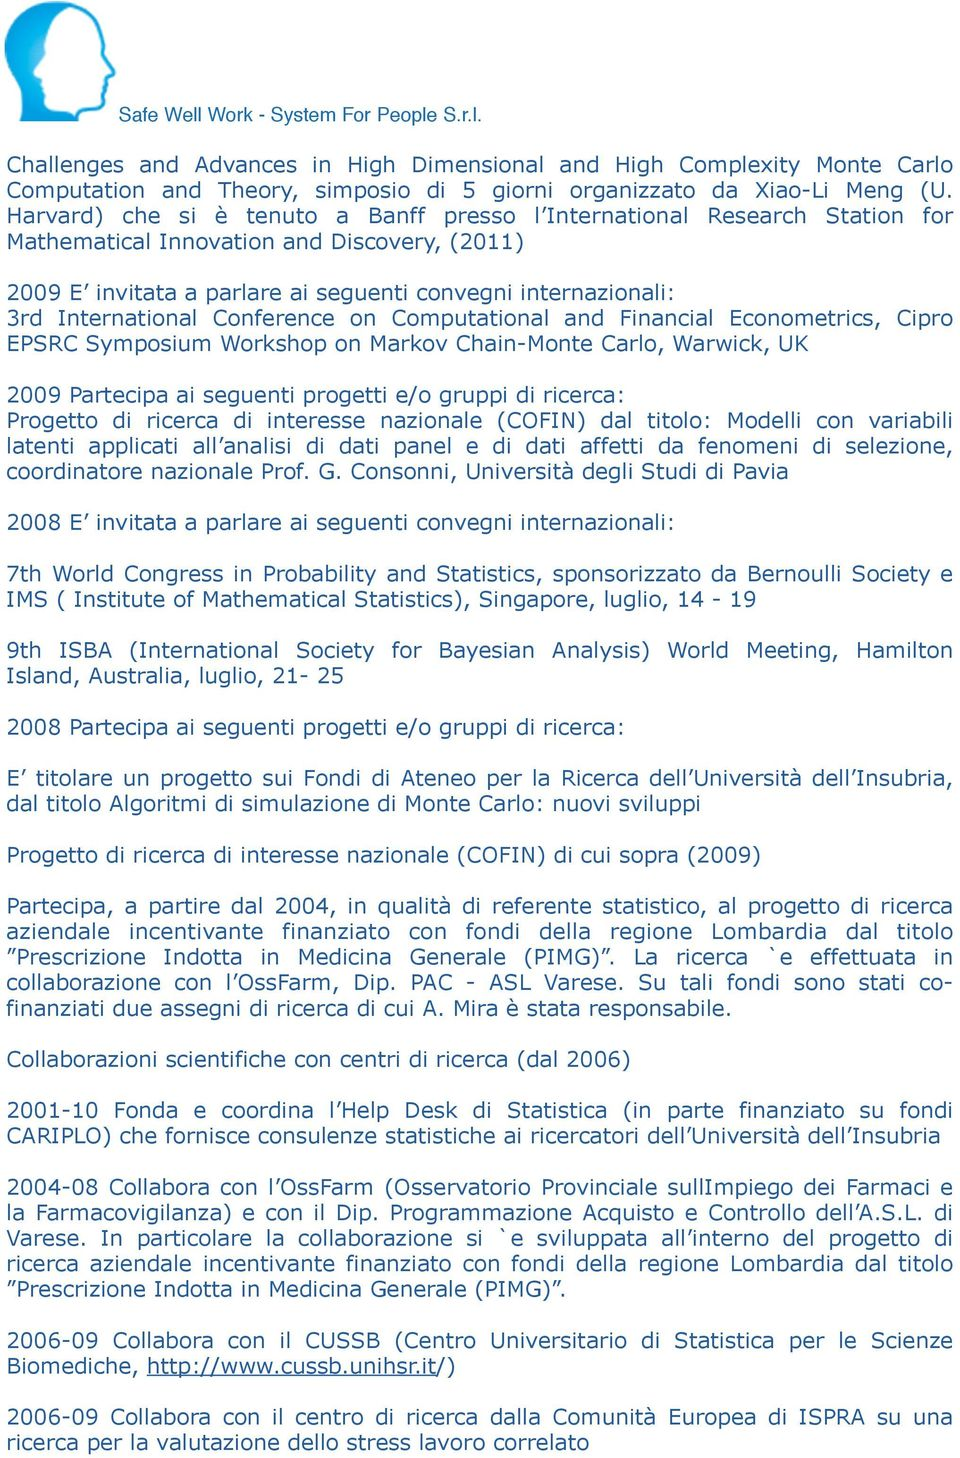 International Conference on Computational and Financial Econometrics, Cipro EPSRC Symposium Workshop on Markov Chain-Monte Carlo, Warwick, UK 2009 Partecipa ai seguenti progetti e/o gruppi di